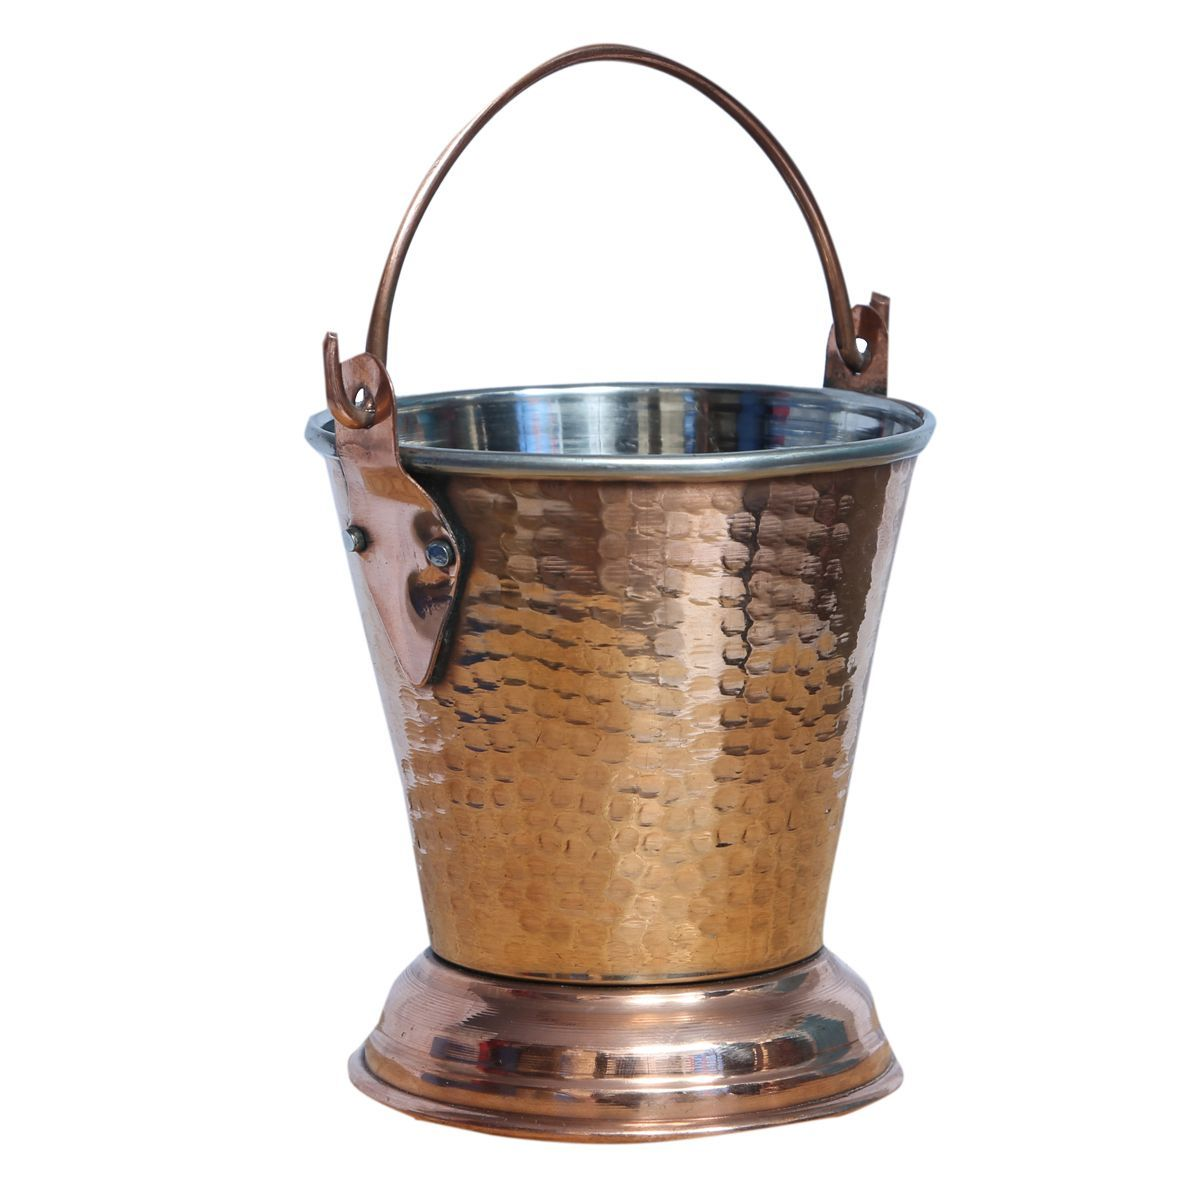 Kuber Industries Handmade Hammered Copper Steel /Copper Gravy Bucket/Balti For Serving Dishes (Height: 5 Inches Width: 4 Inches Depth: 2.5 Inches) (Buck02)